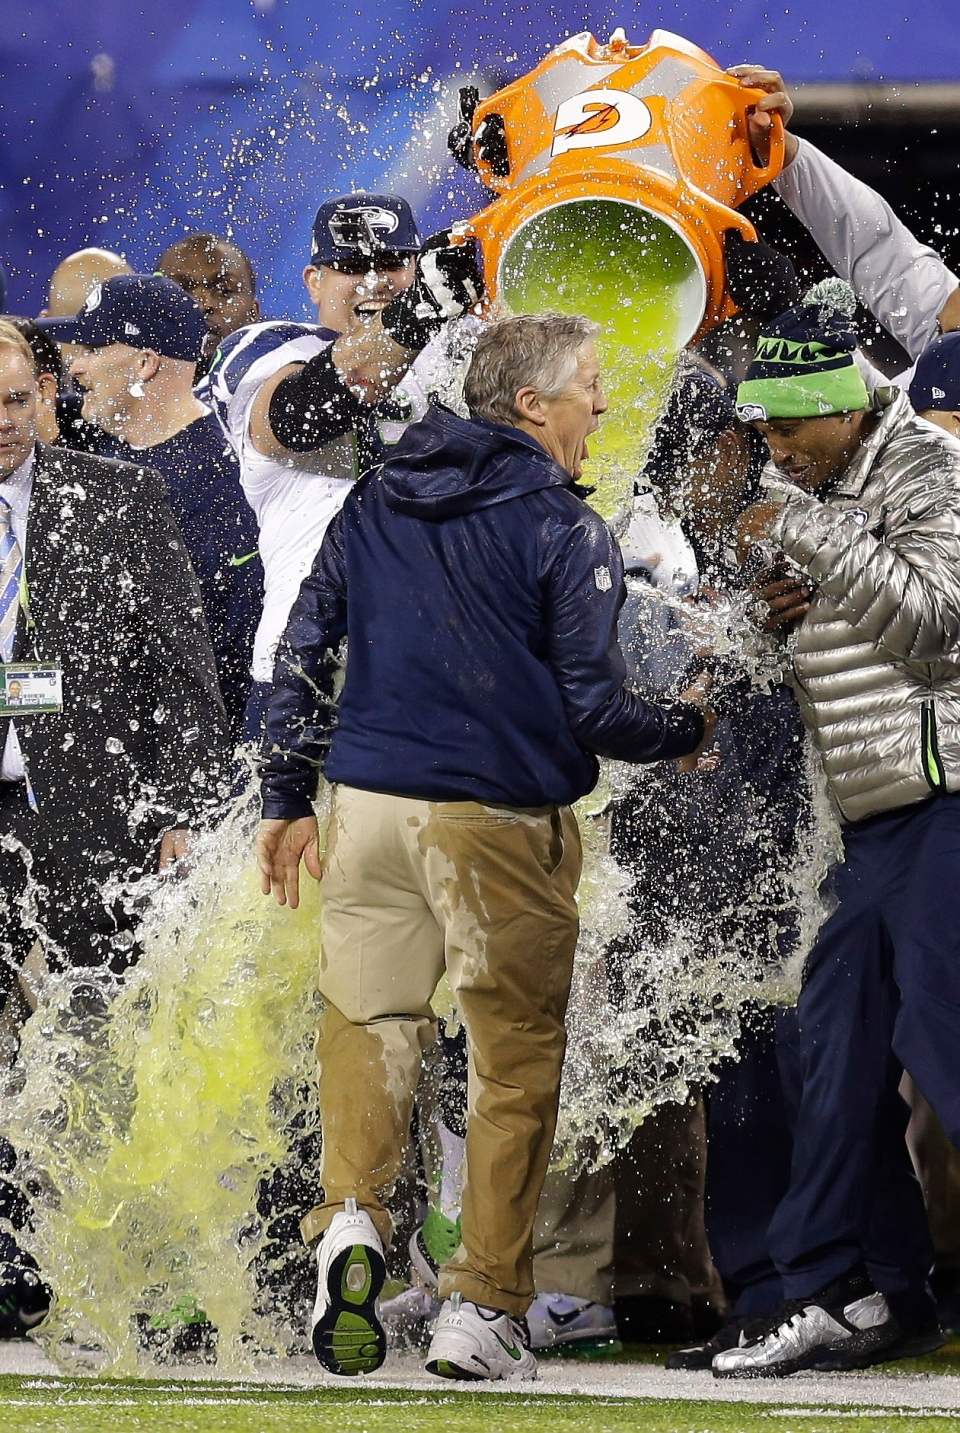 Seattle Seahawks head coach Pete Carroll is doused with Gatorade in the final minutes of the NFL Super Bowl XLVIII football game against the Denver Broncos in East Rutherford, N.J., Sunday, Feb. 2, 2014. (AP / Ben Margot)